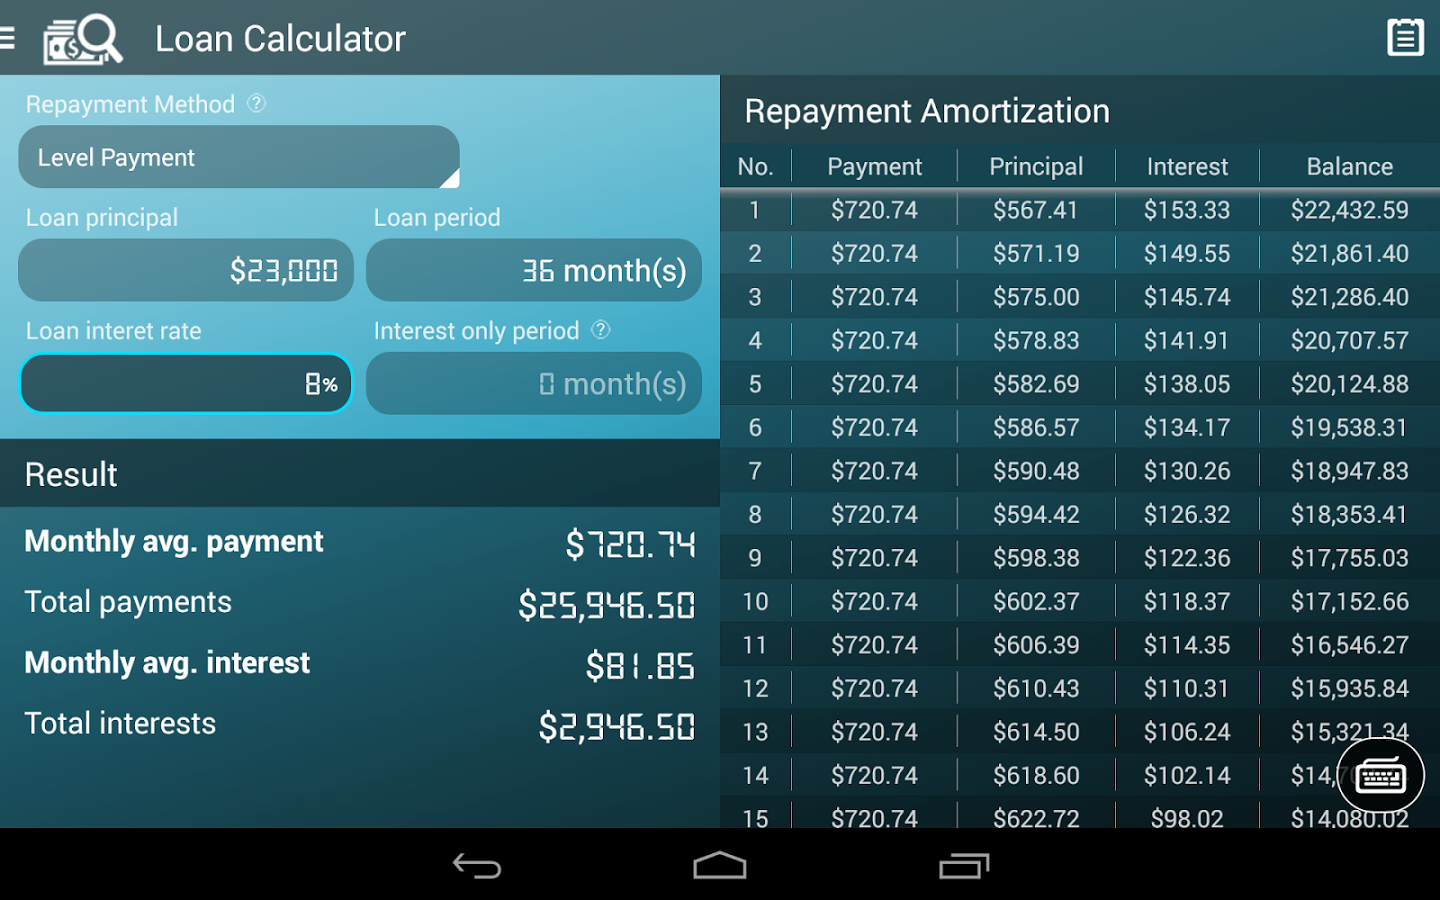 Loan calculator clipart black and white library Loan Calculator - Android Apps on Google Play clipart black and white library